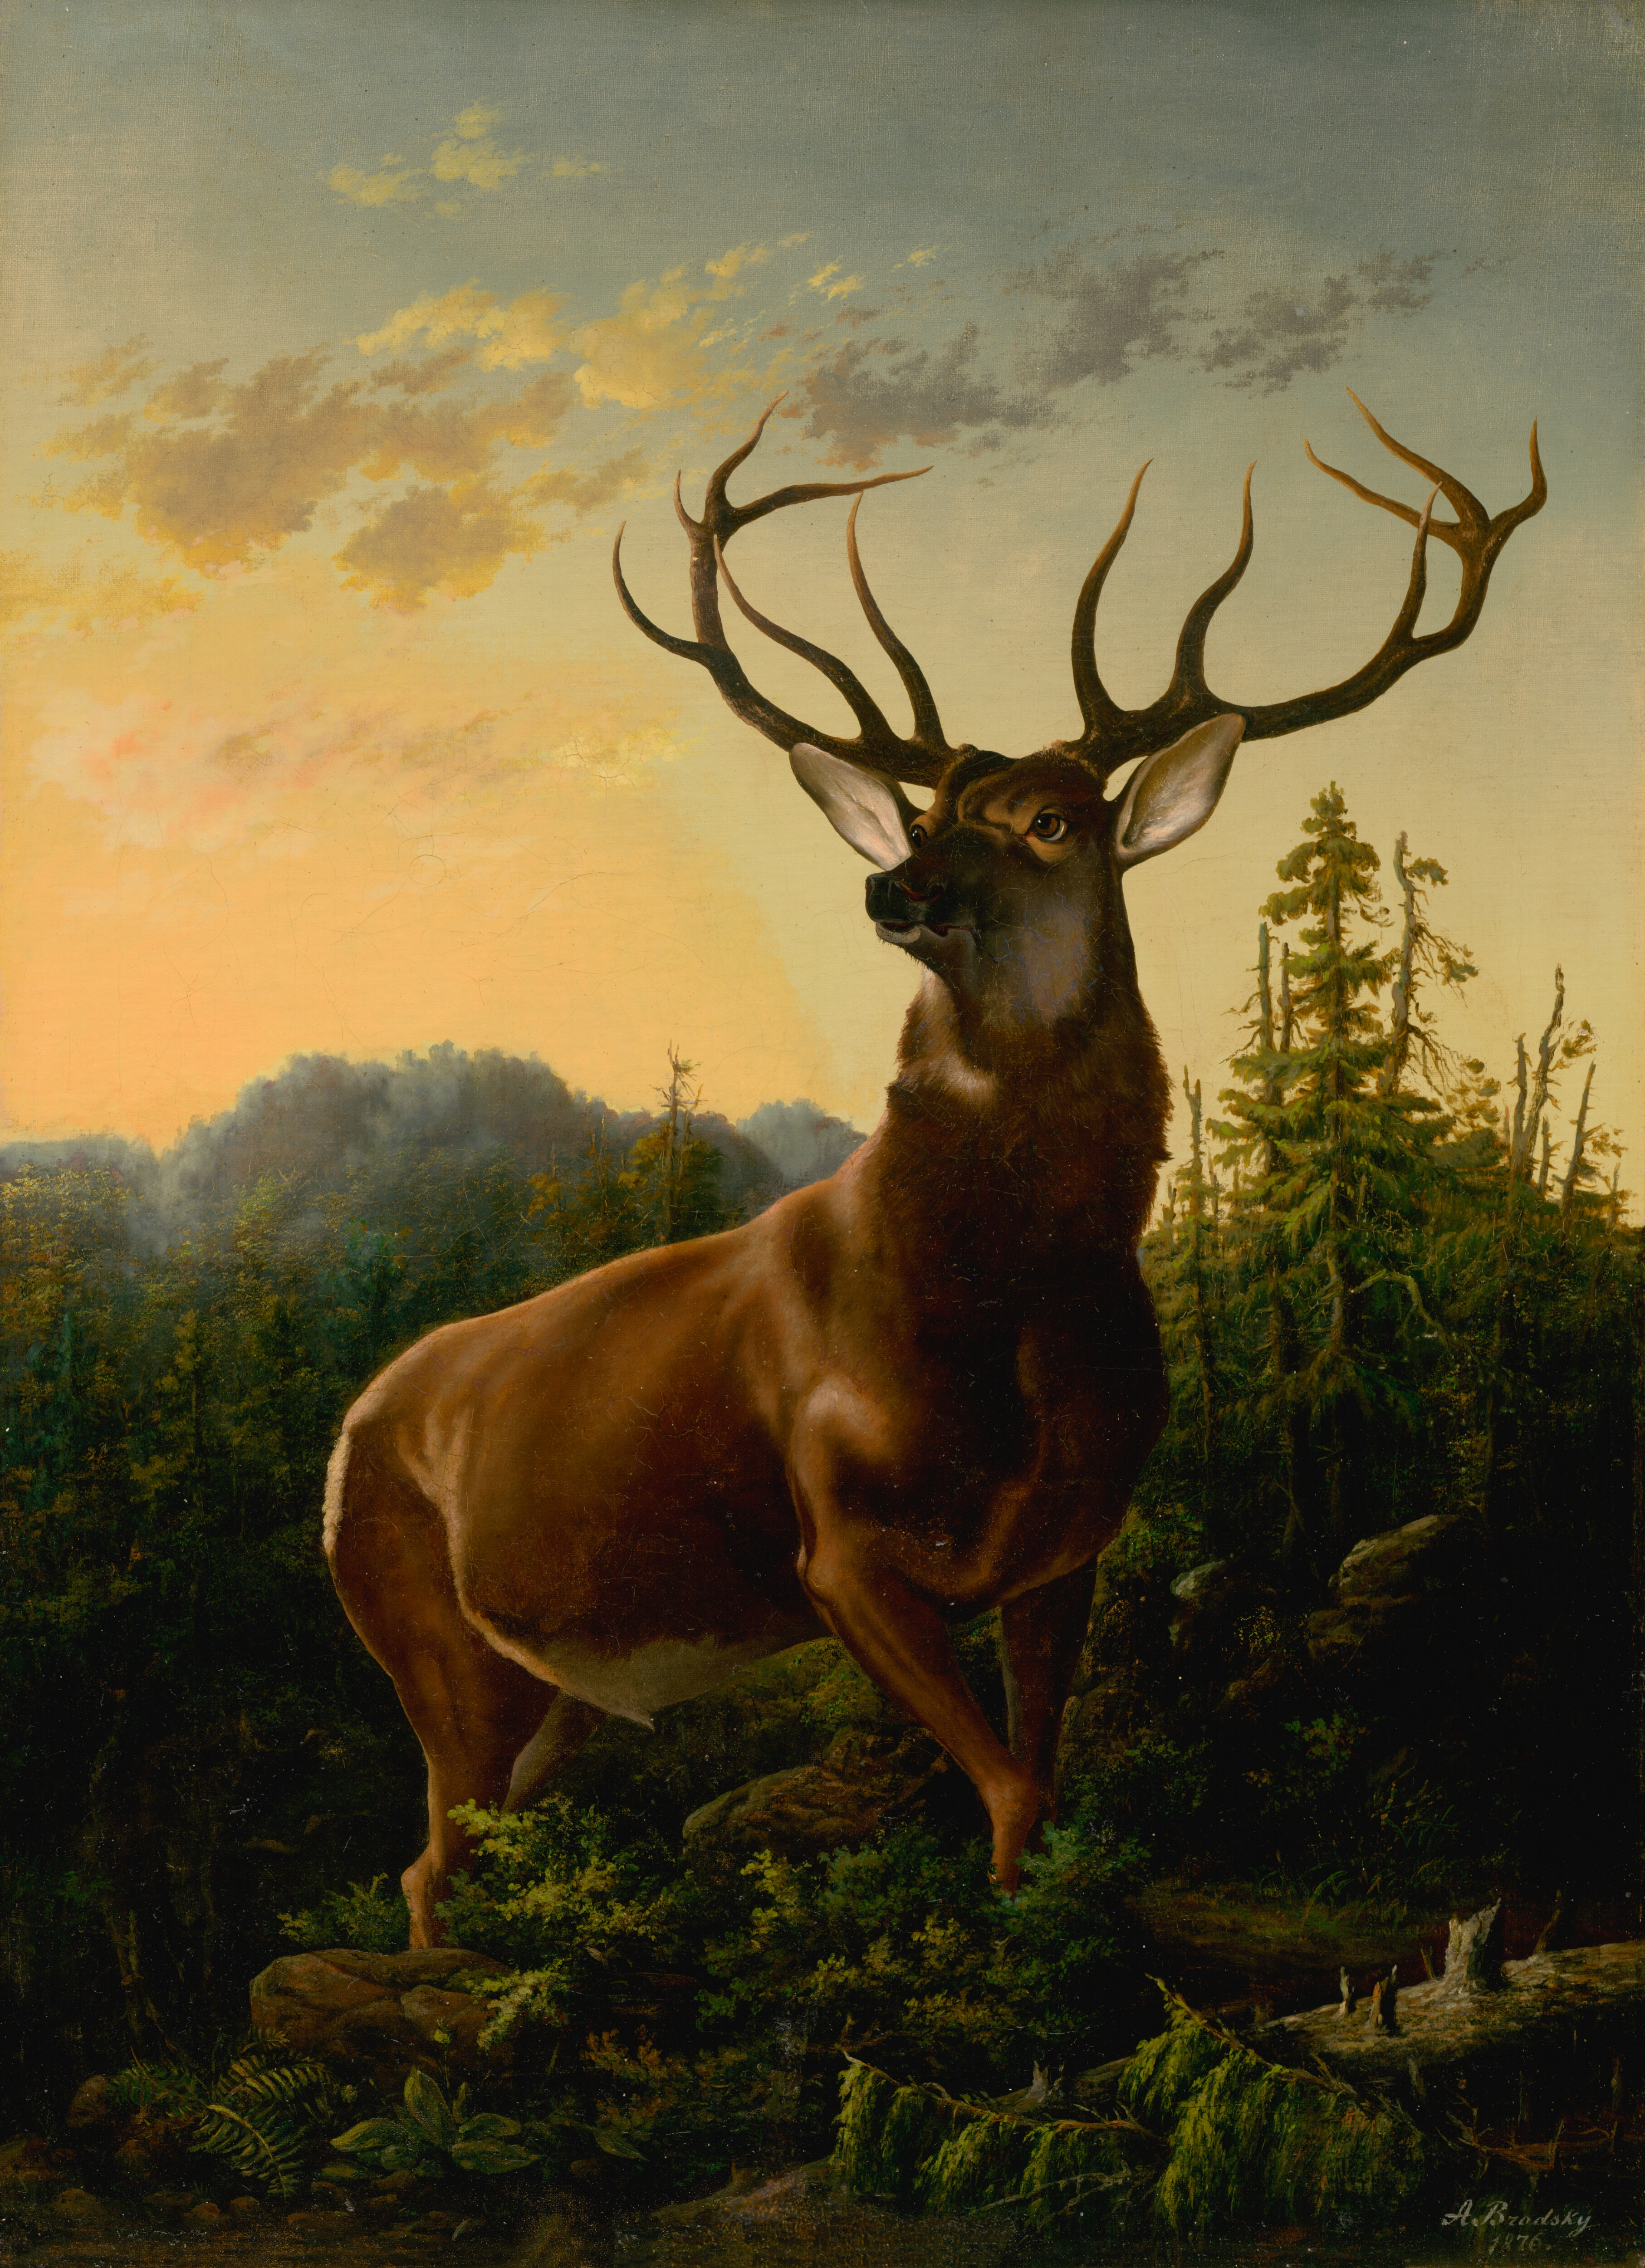 O Deer File:Alexander Brodszky - Deer in Forest Landscape - O 561 - Slovak  National Gallery.jpg